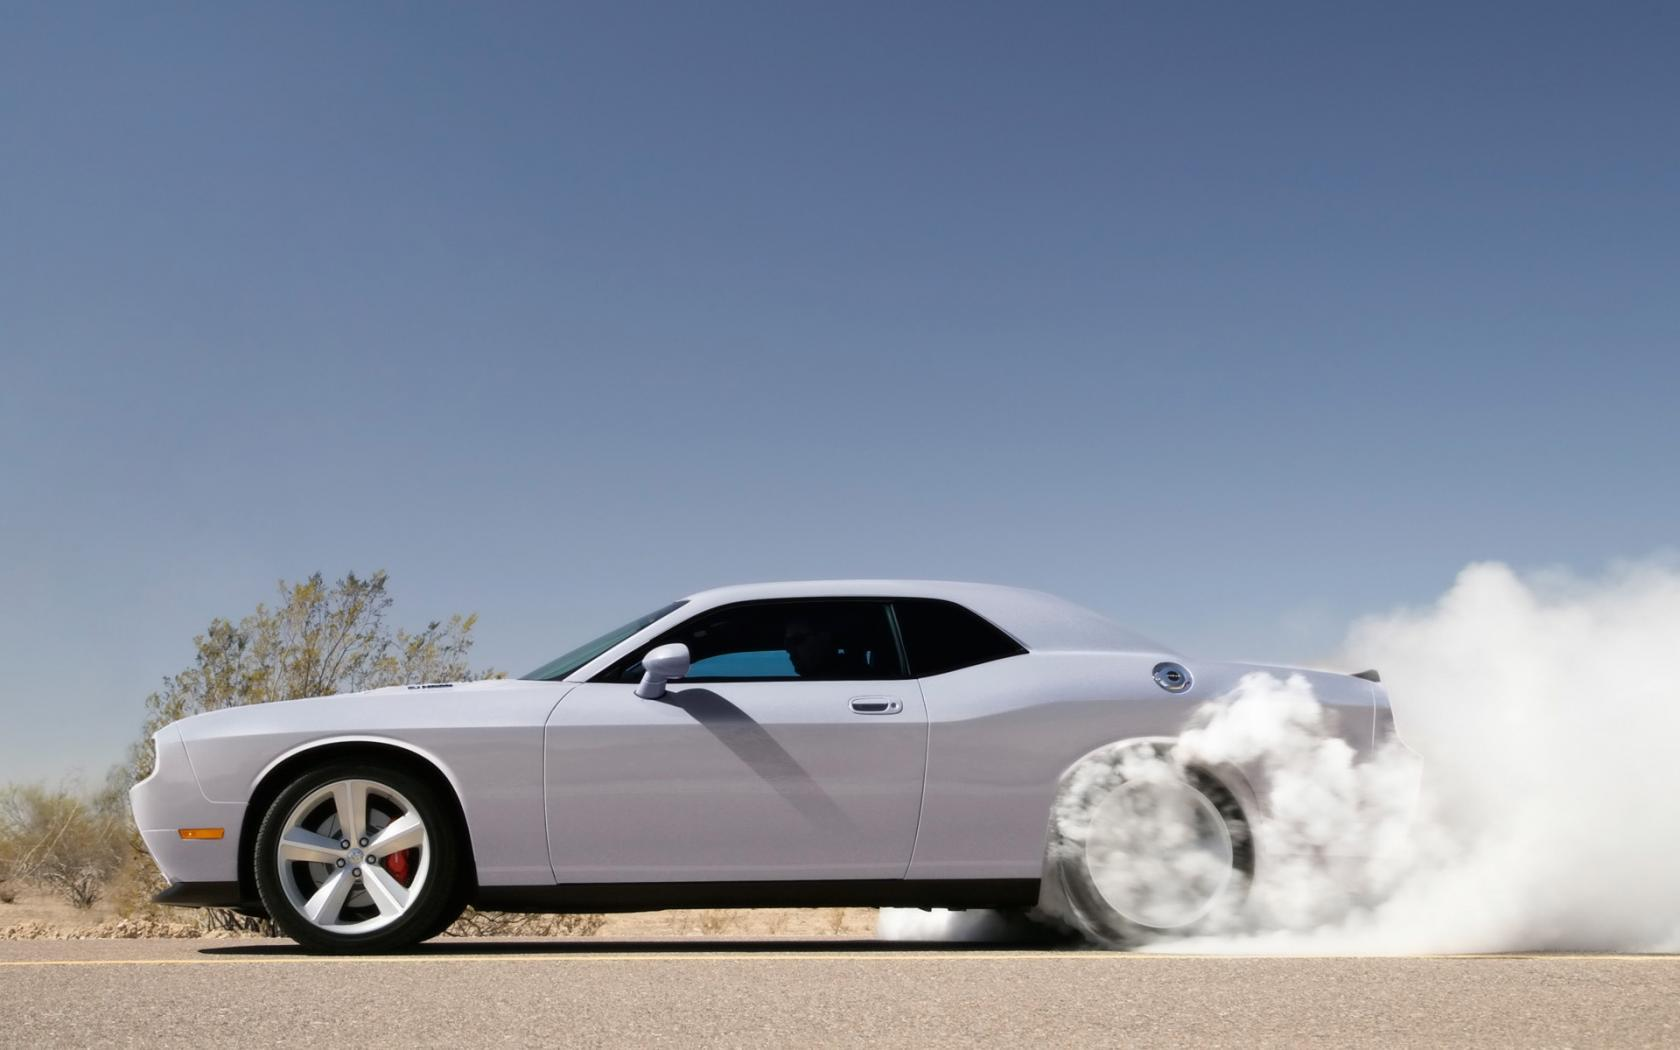 2009 Dodge Challenger Srt8 Side Smoke 1680x1050